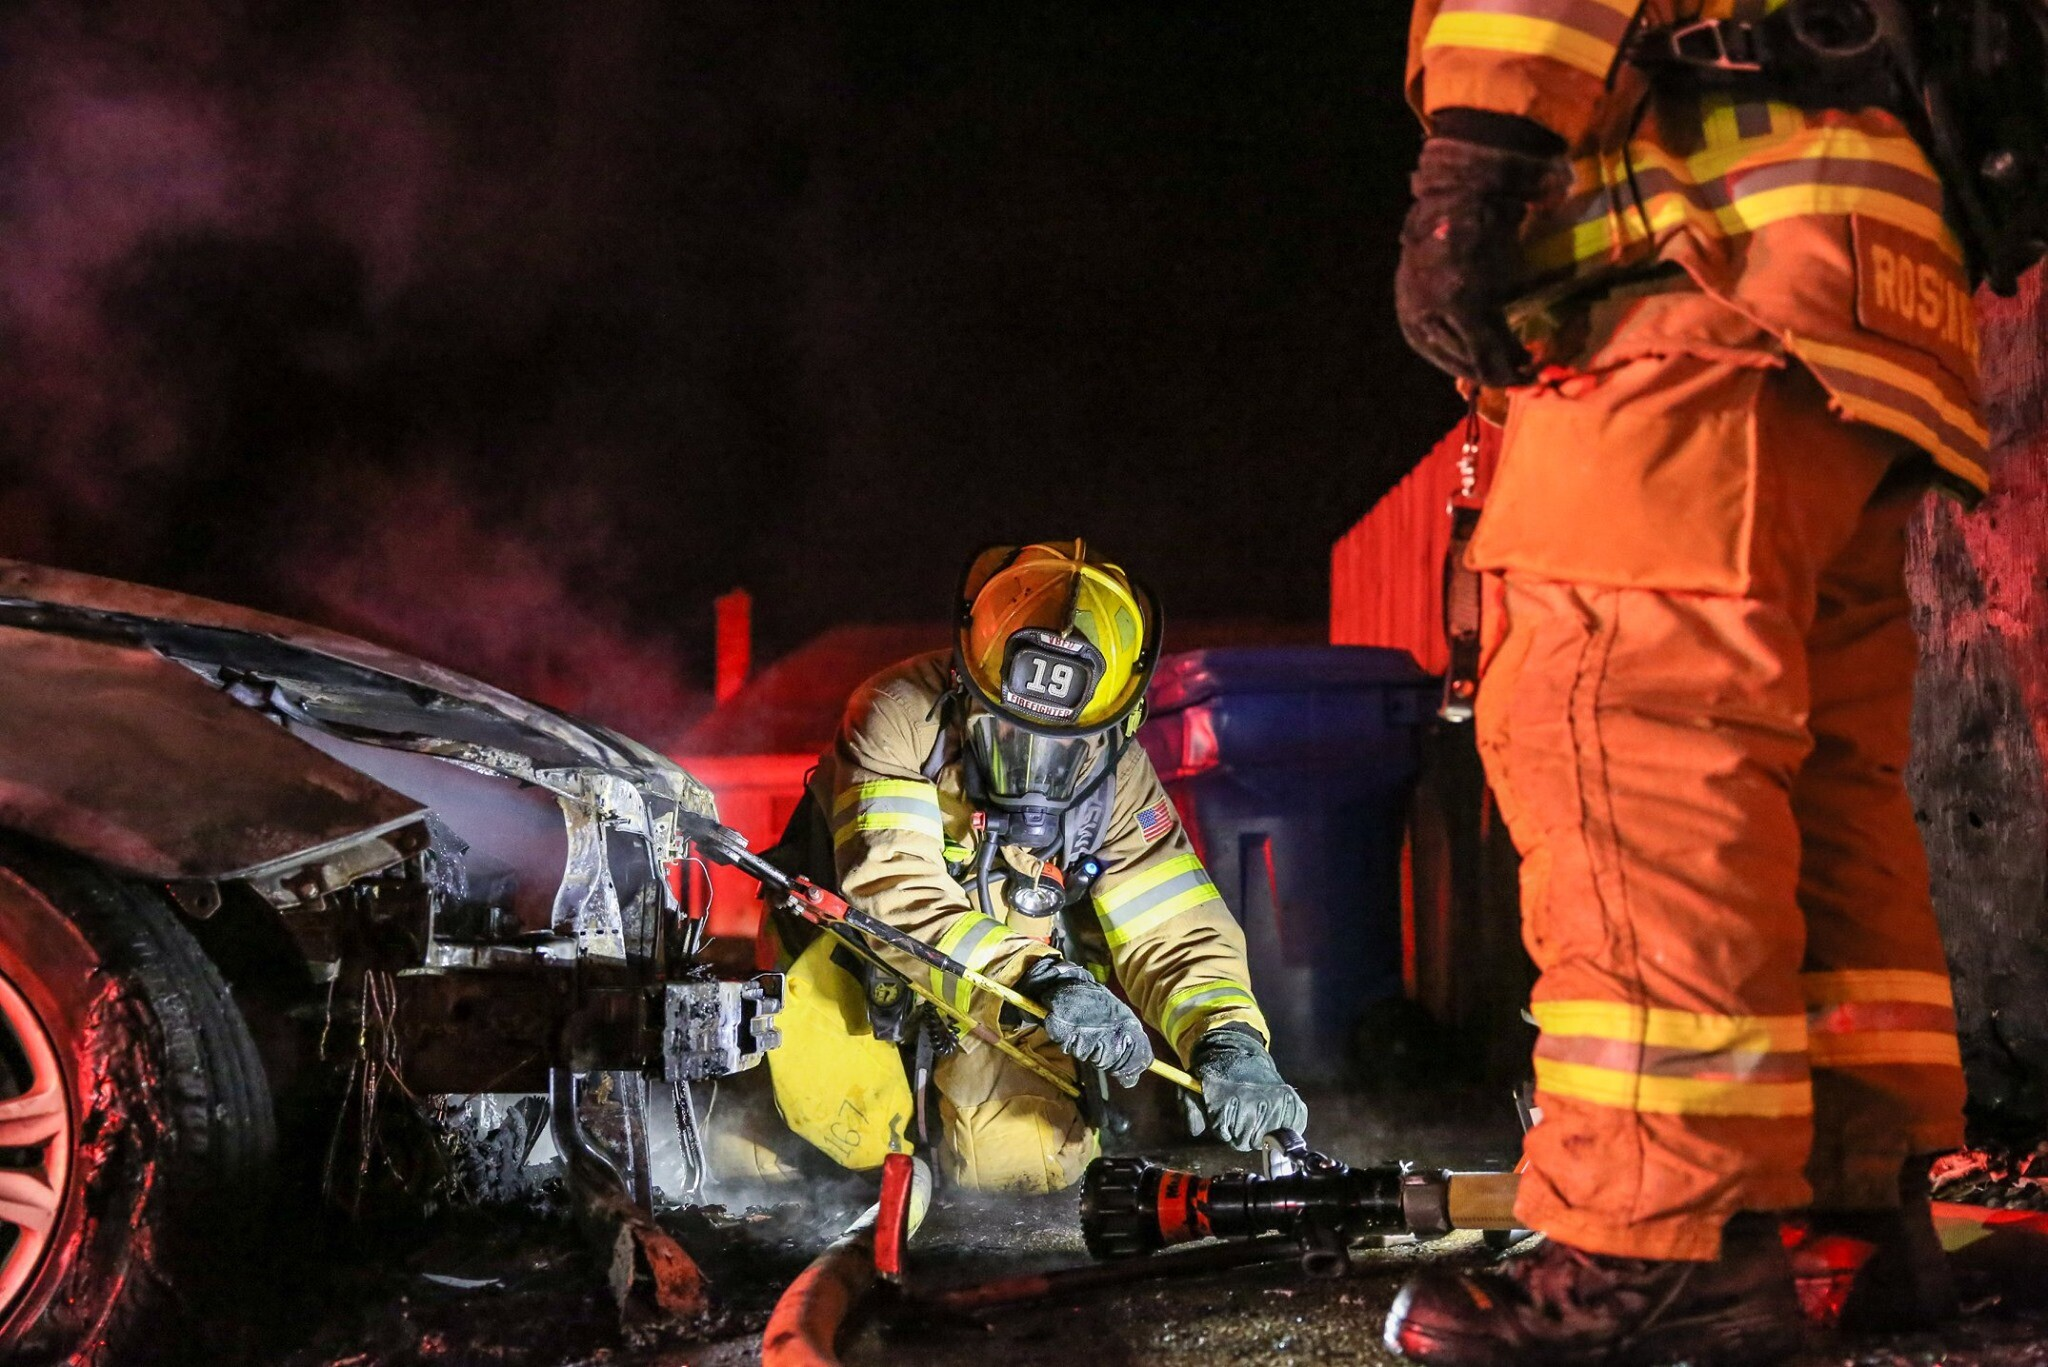 Photos: No injuries after vehicle fire in Virginia Beach